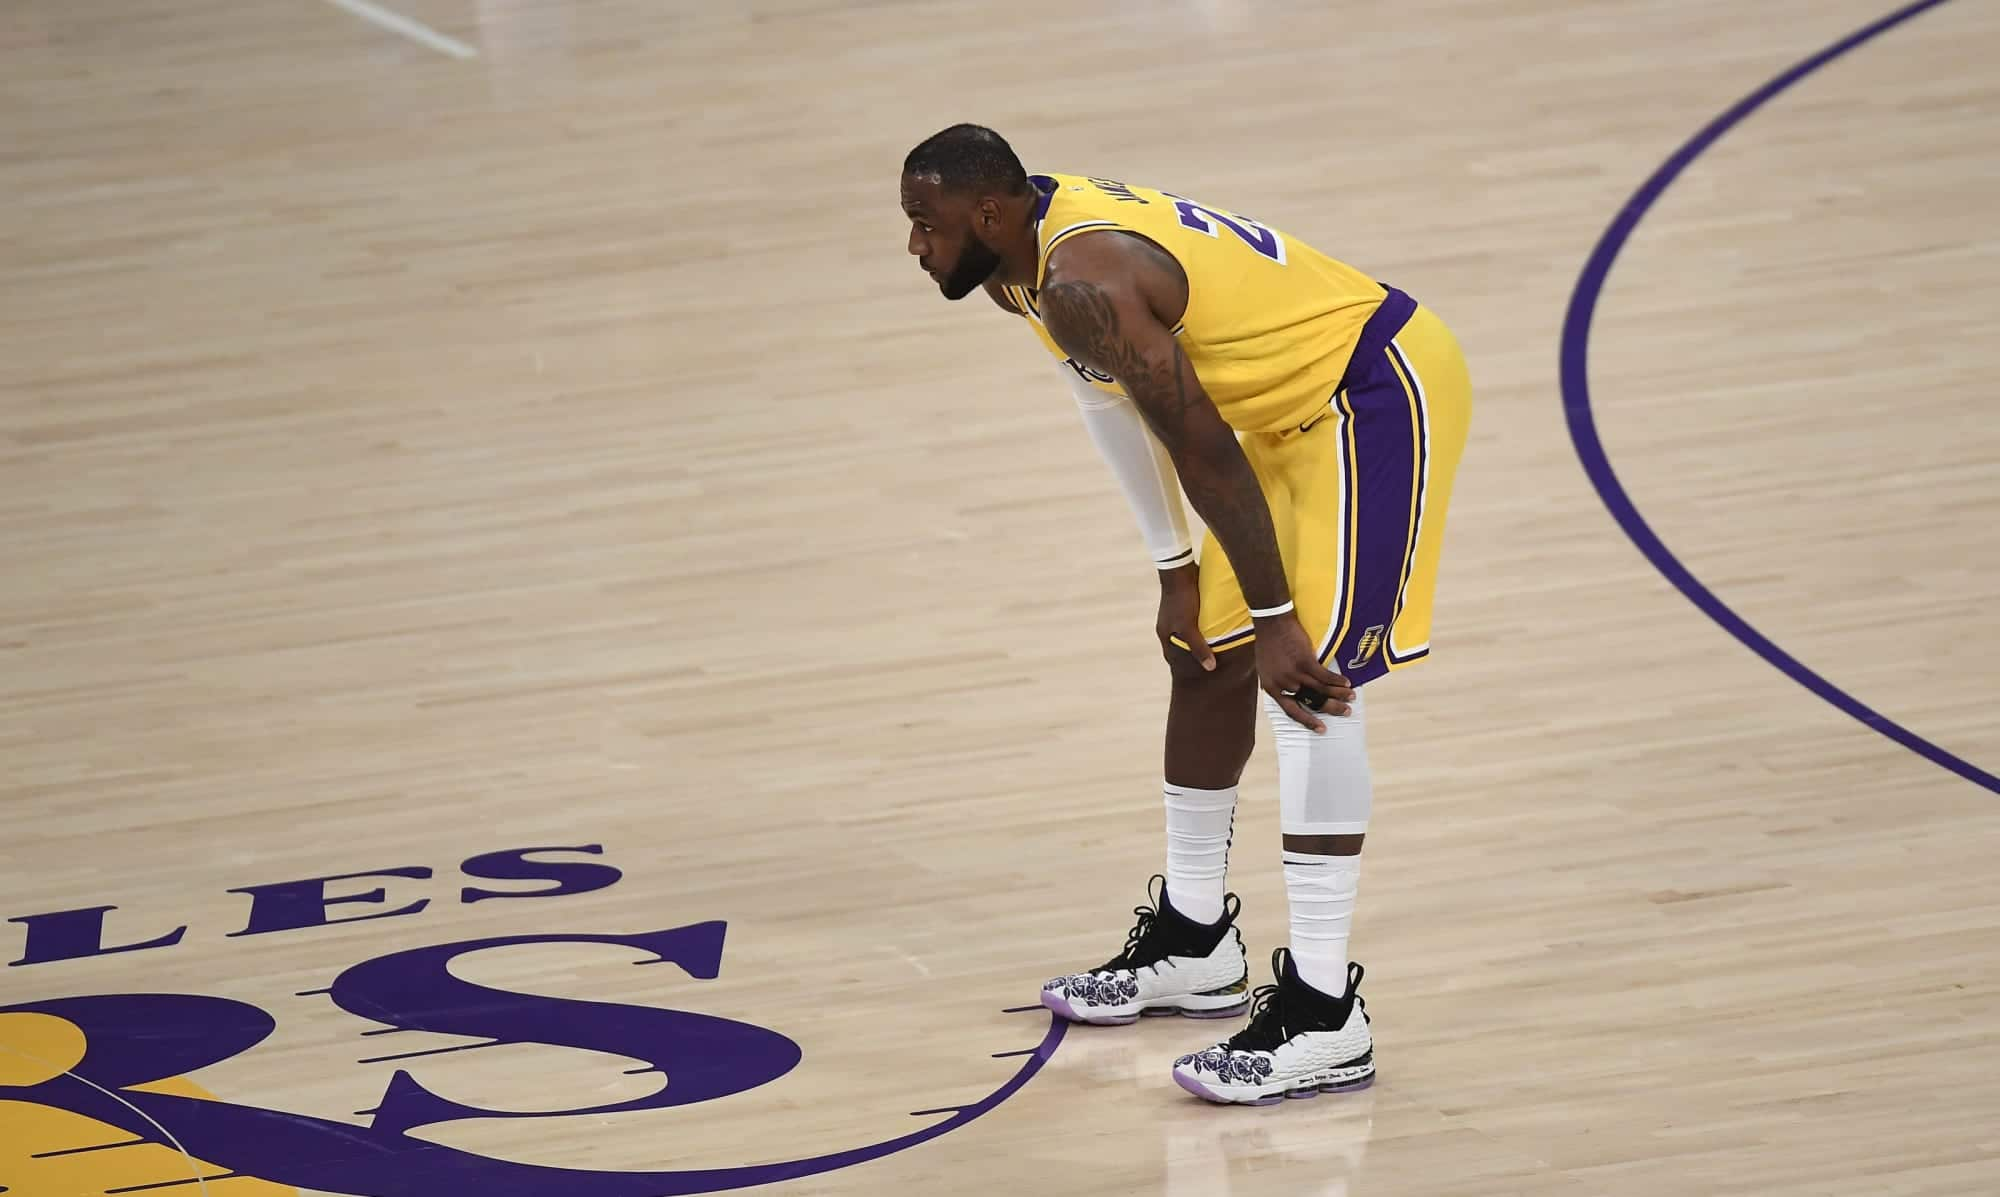 lebron-james-catches-heat-for-leaving-court-early-in-lakers-blowout-loss-video.jpeg